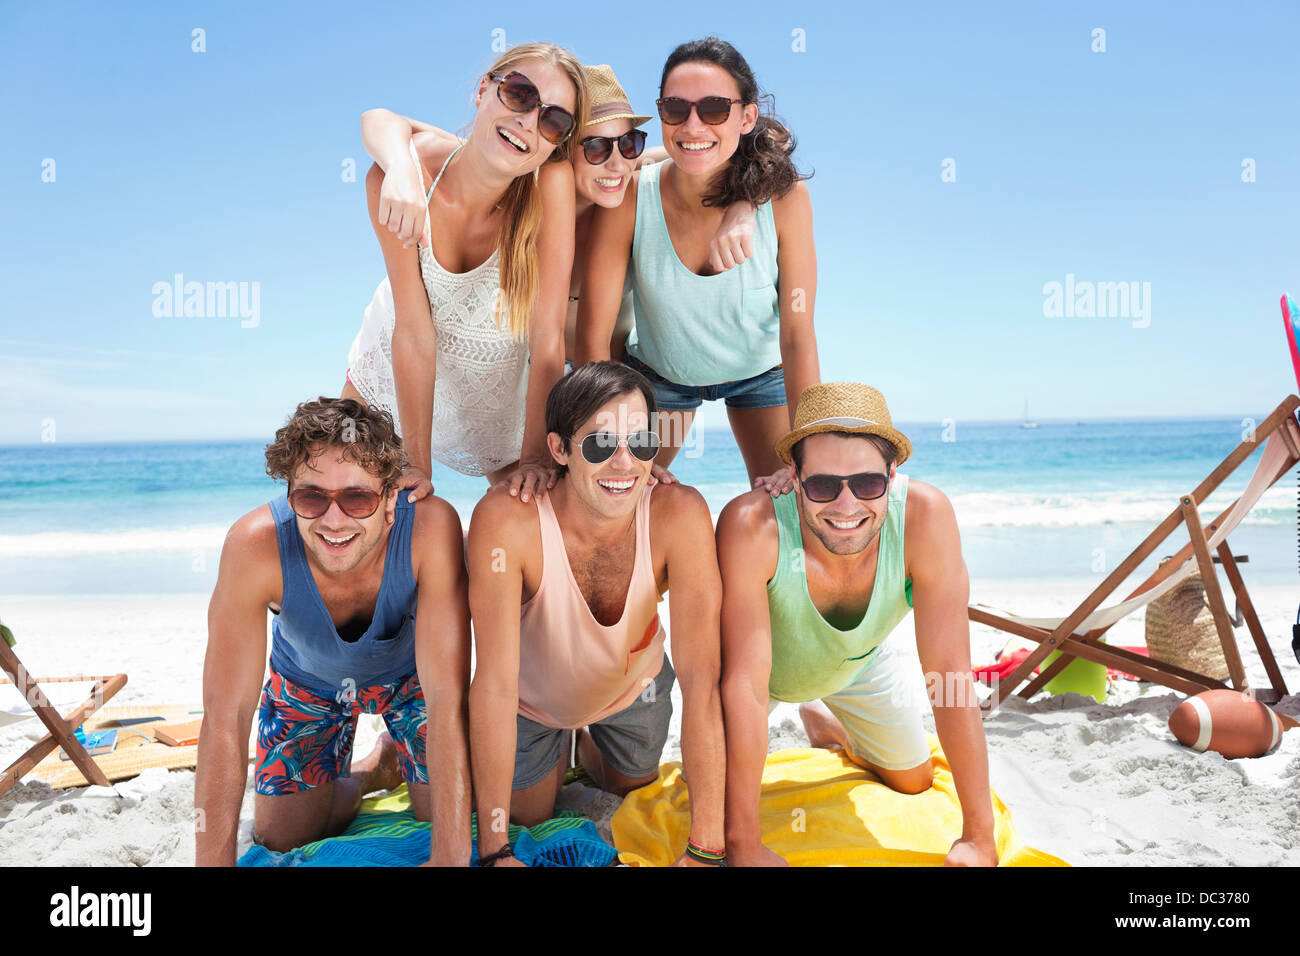 Portrait of happy friends forming pyramid on beach - Stock Image